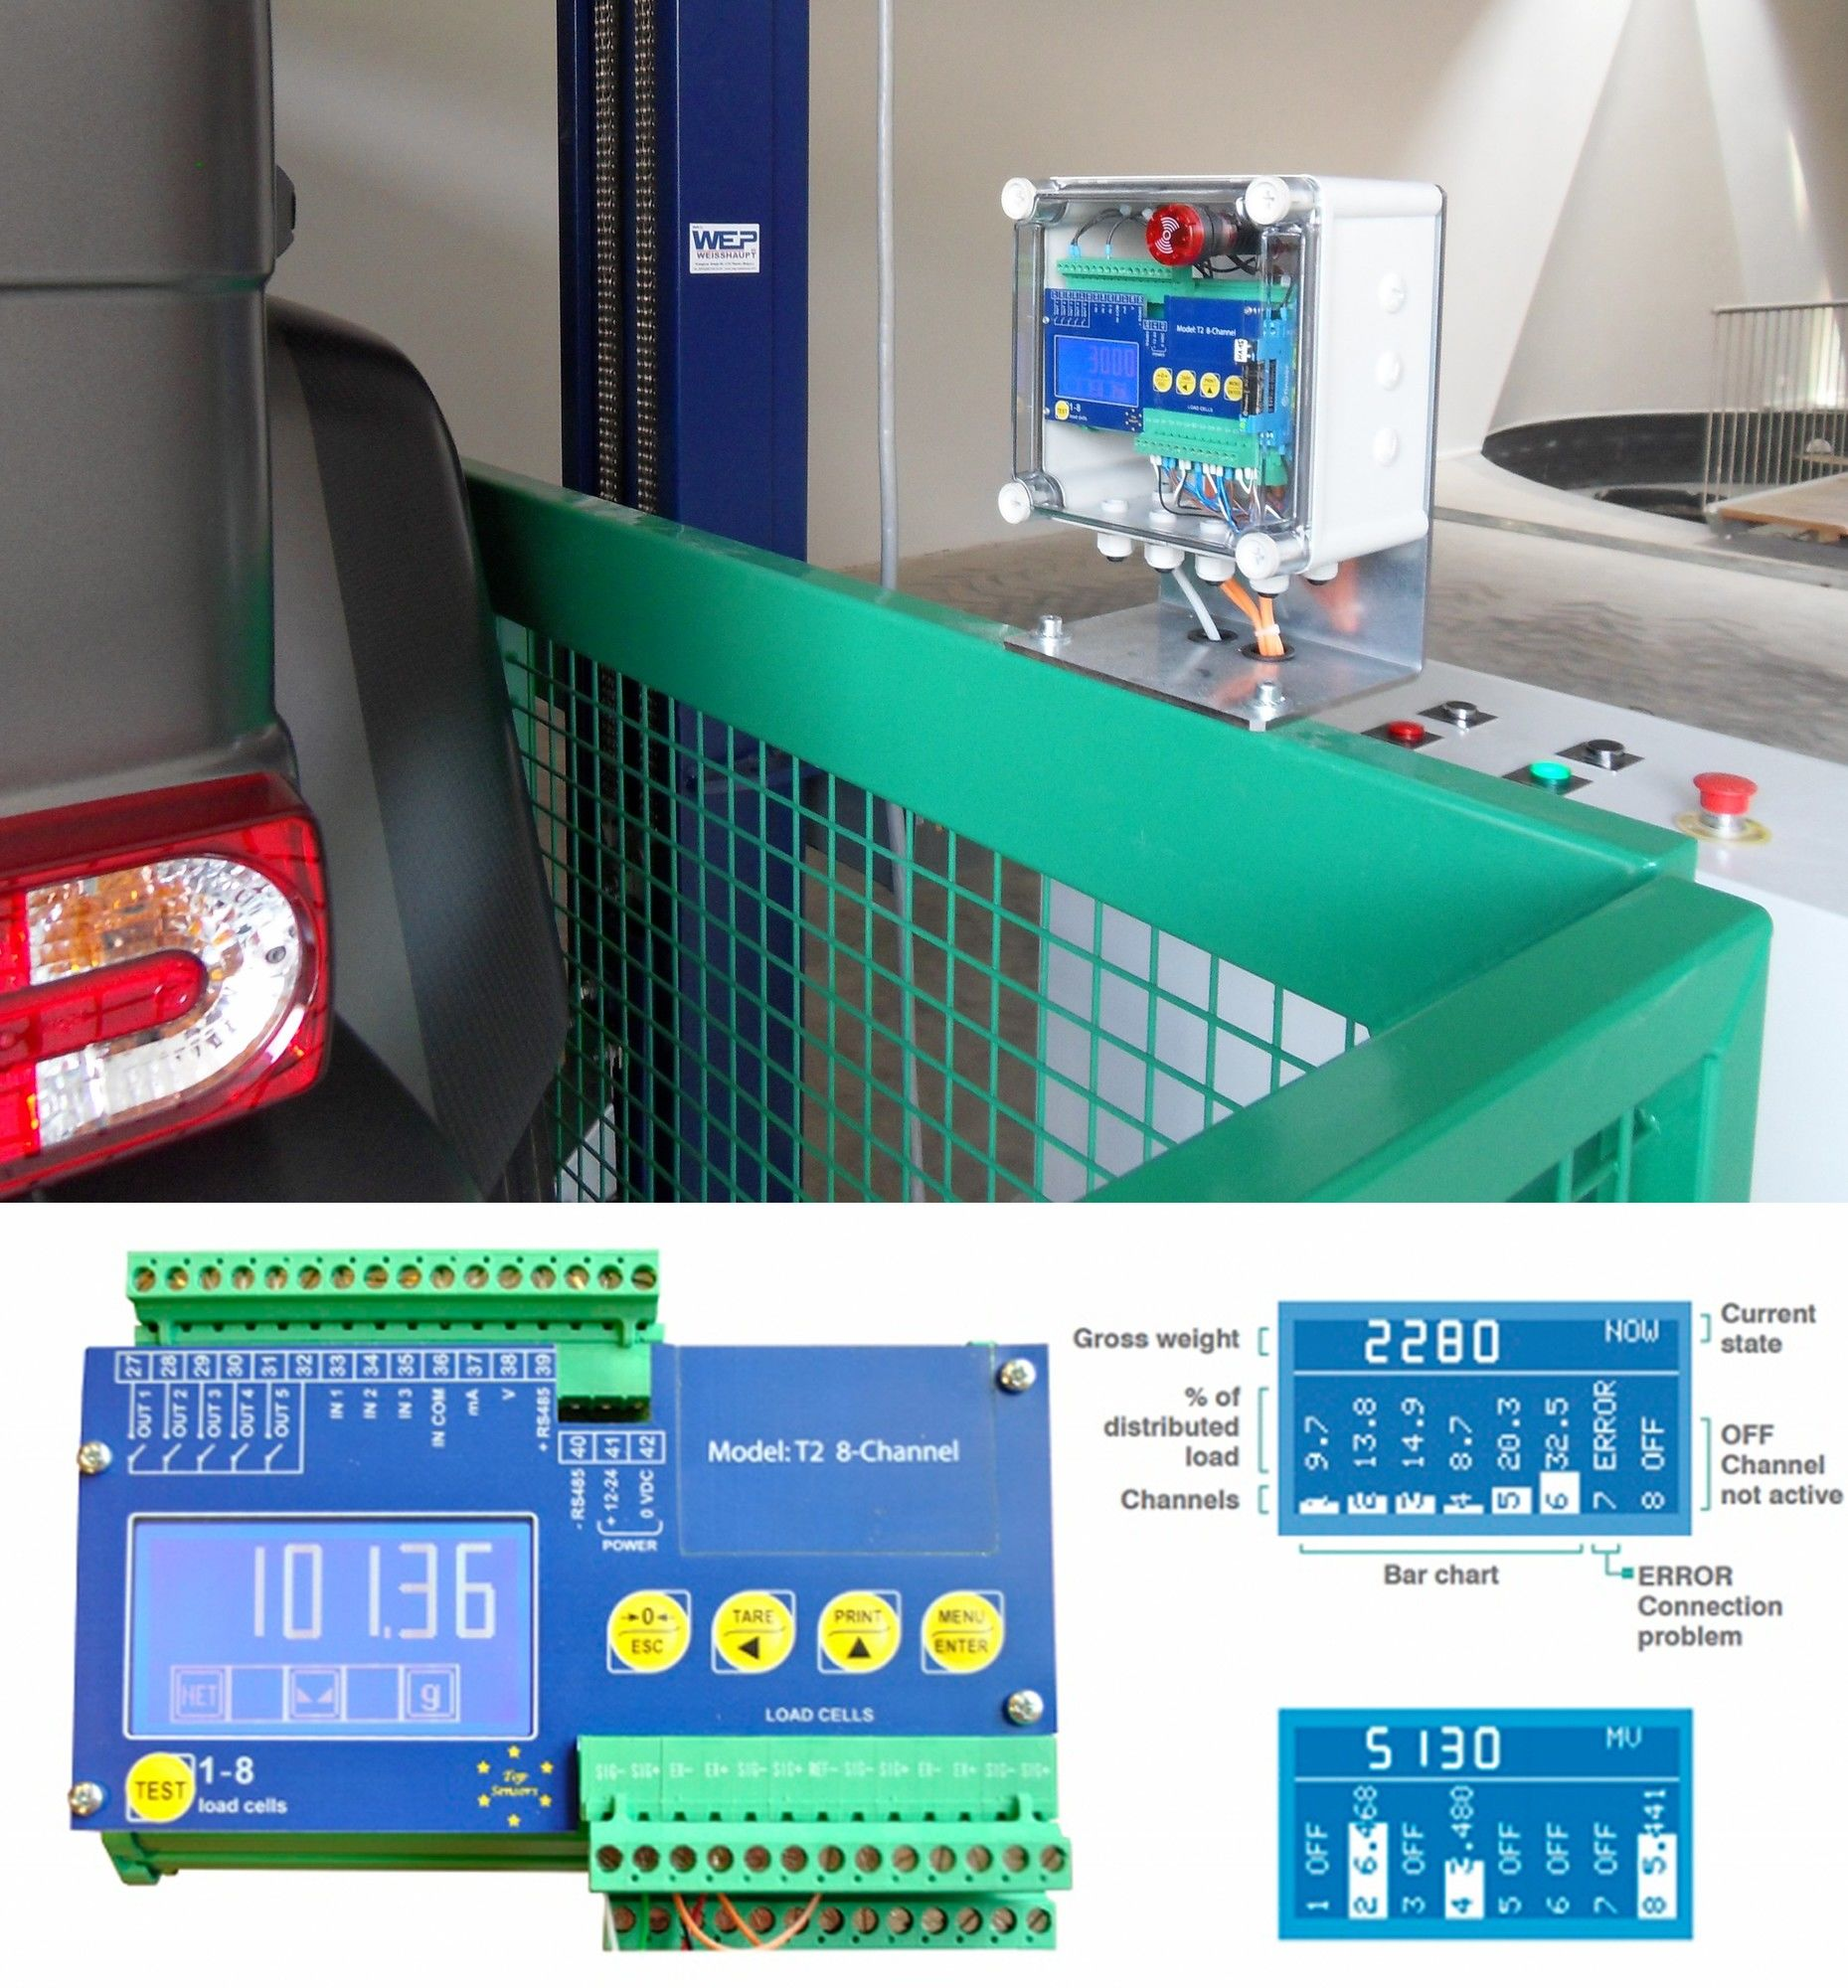 Zemic Top-Sensors T2-8 Multi Channel Weight Transmitter with Individual Setpoints